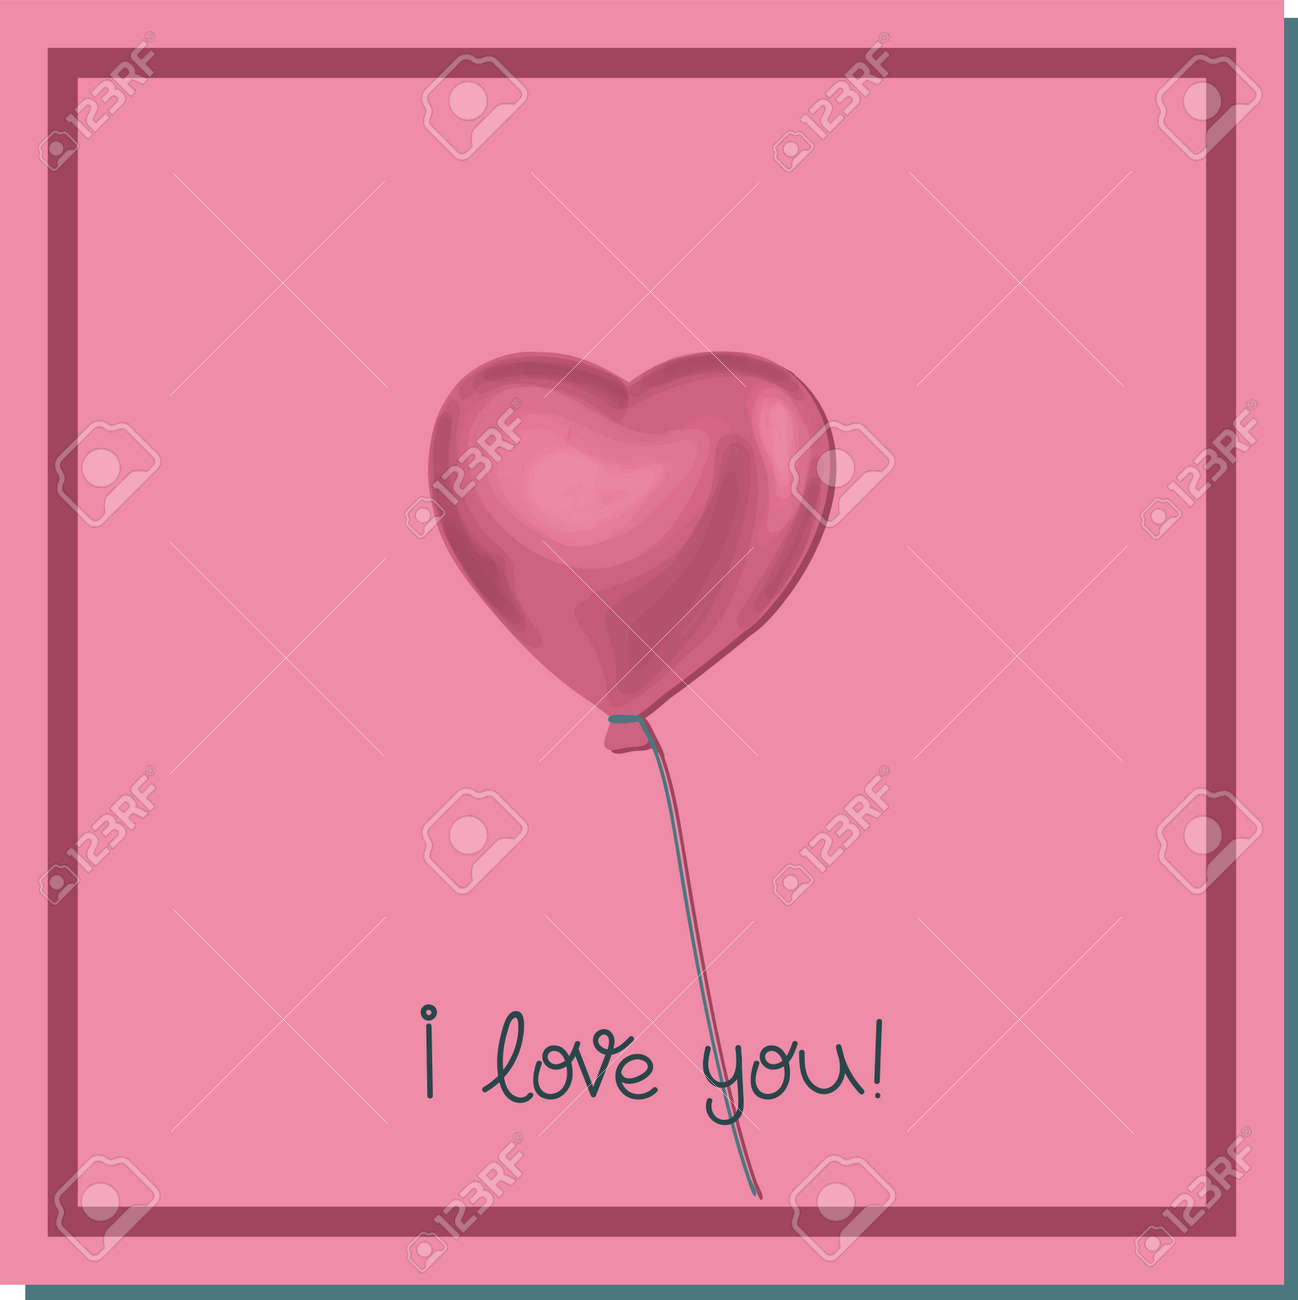 Balloon of newlyweds. Hearts on a string. Love concept. Valentine's day poster square. Trendy illustration on the theme of love. Vector illustration. - 168195339